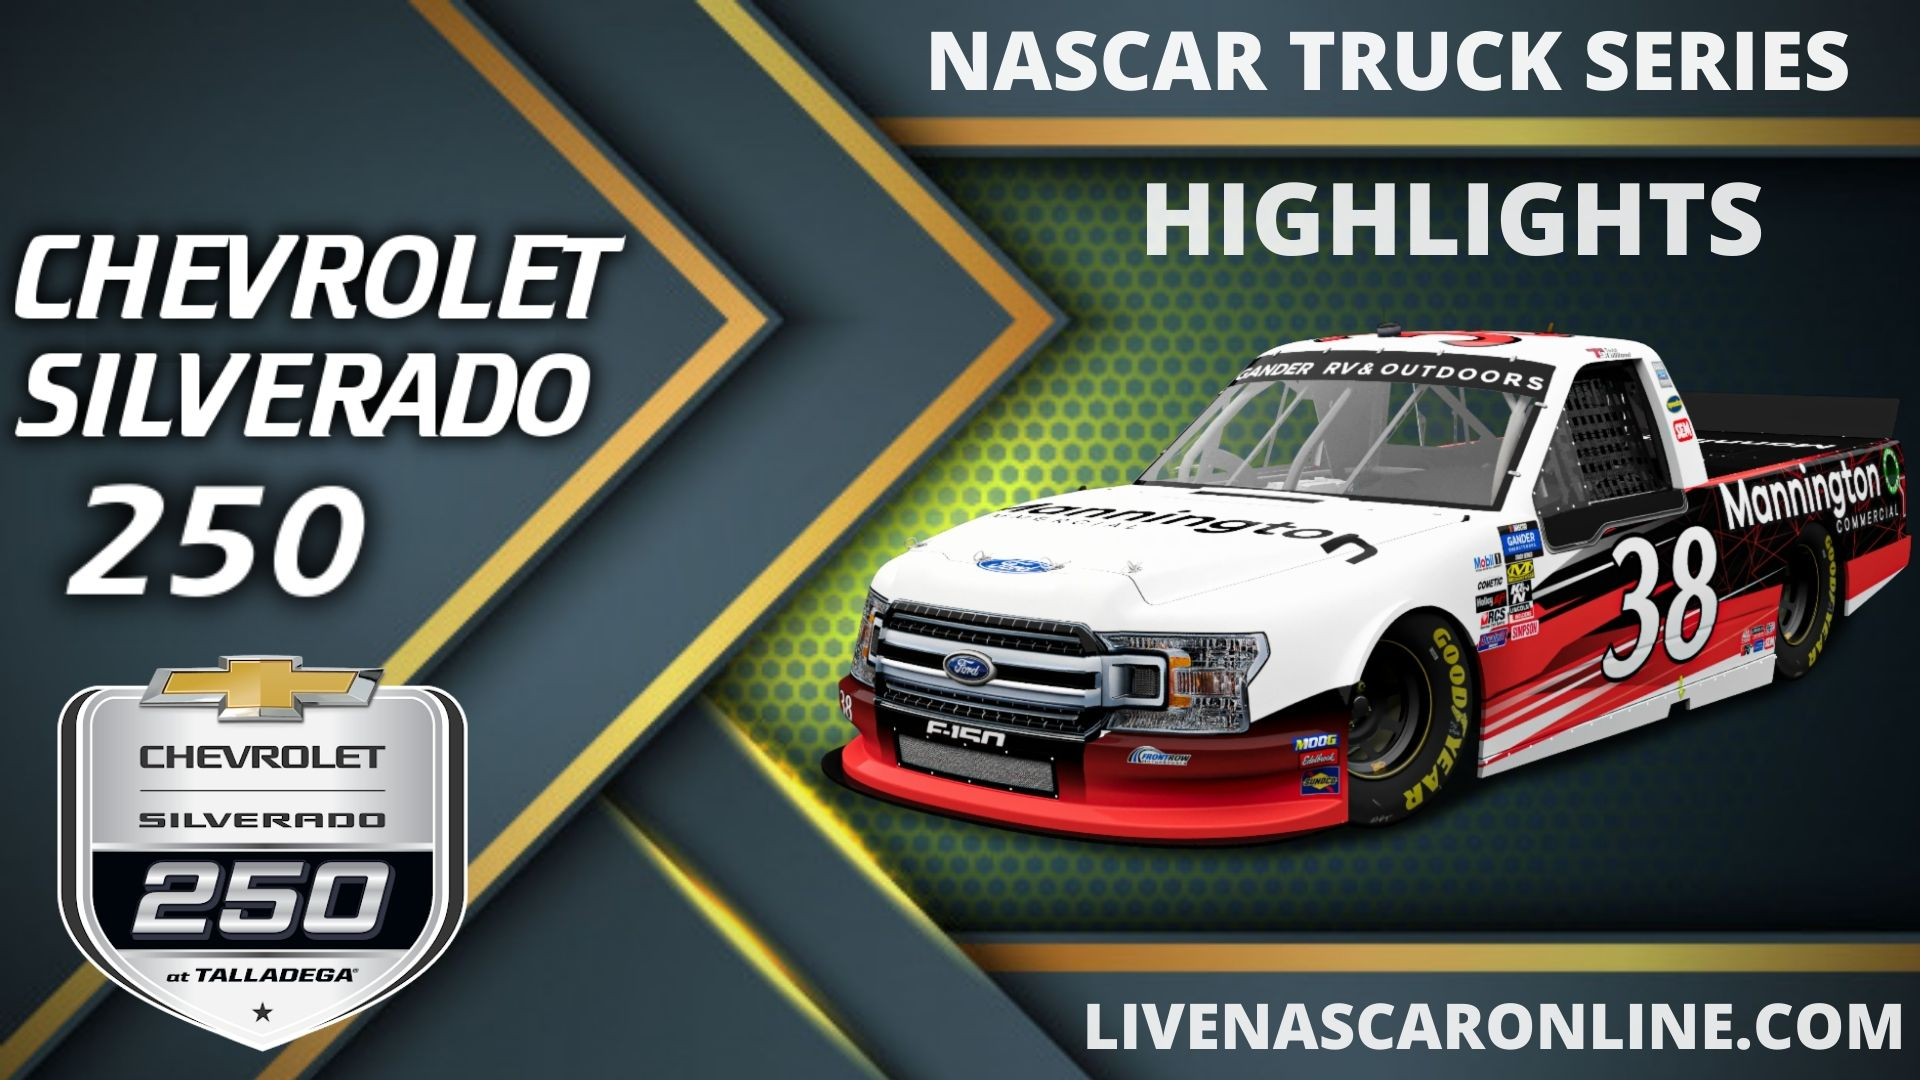 Chevrolet Silverado 250 Highlights 2020 Nascar Truck Series